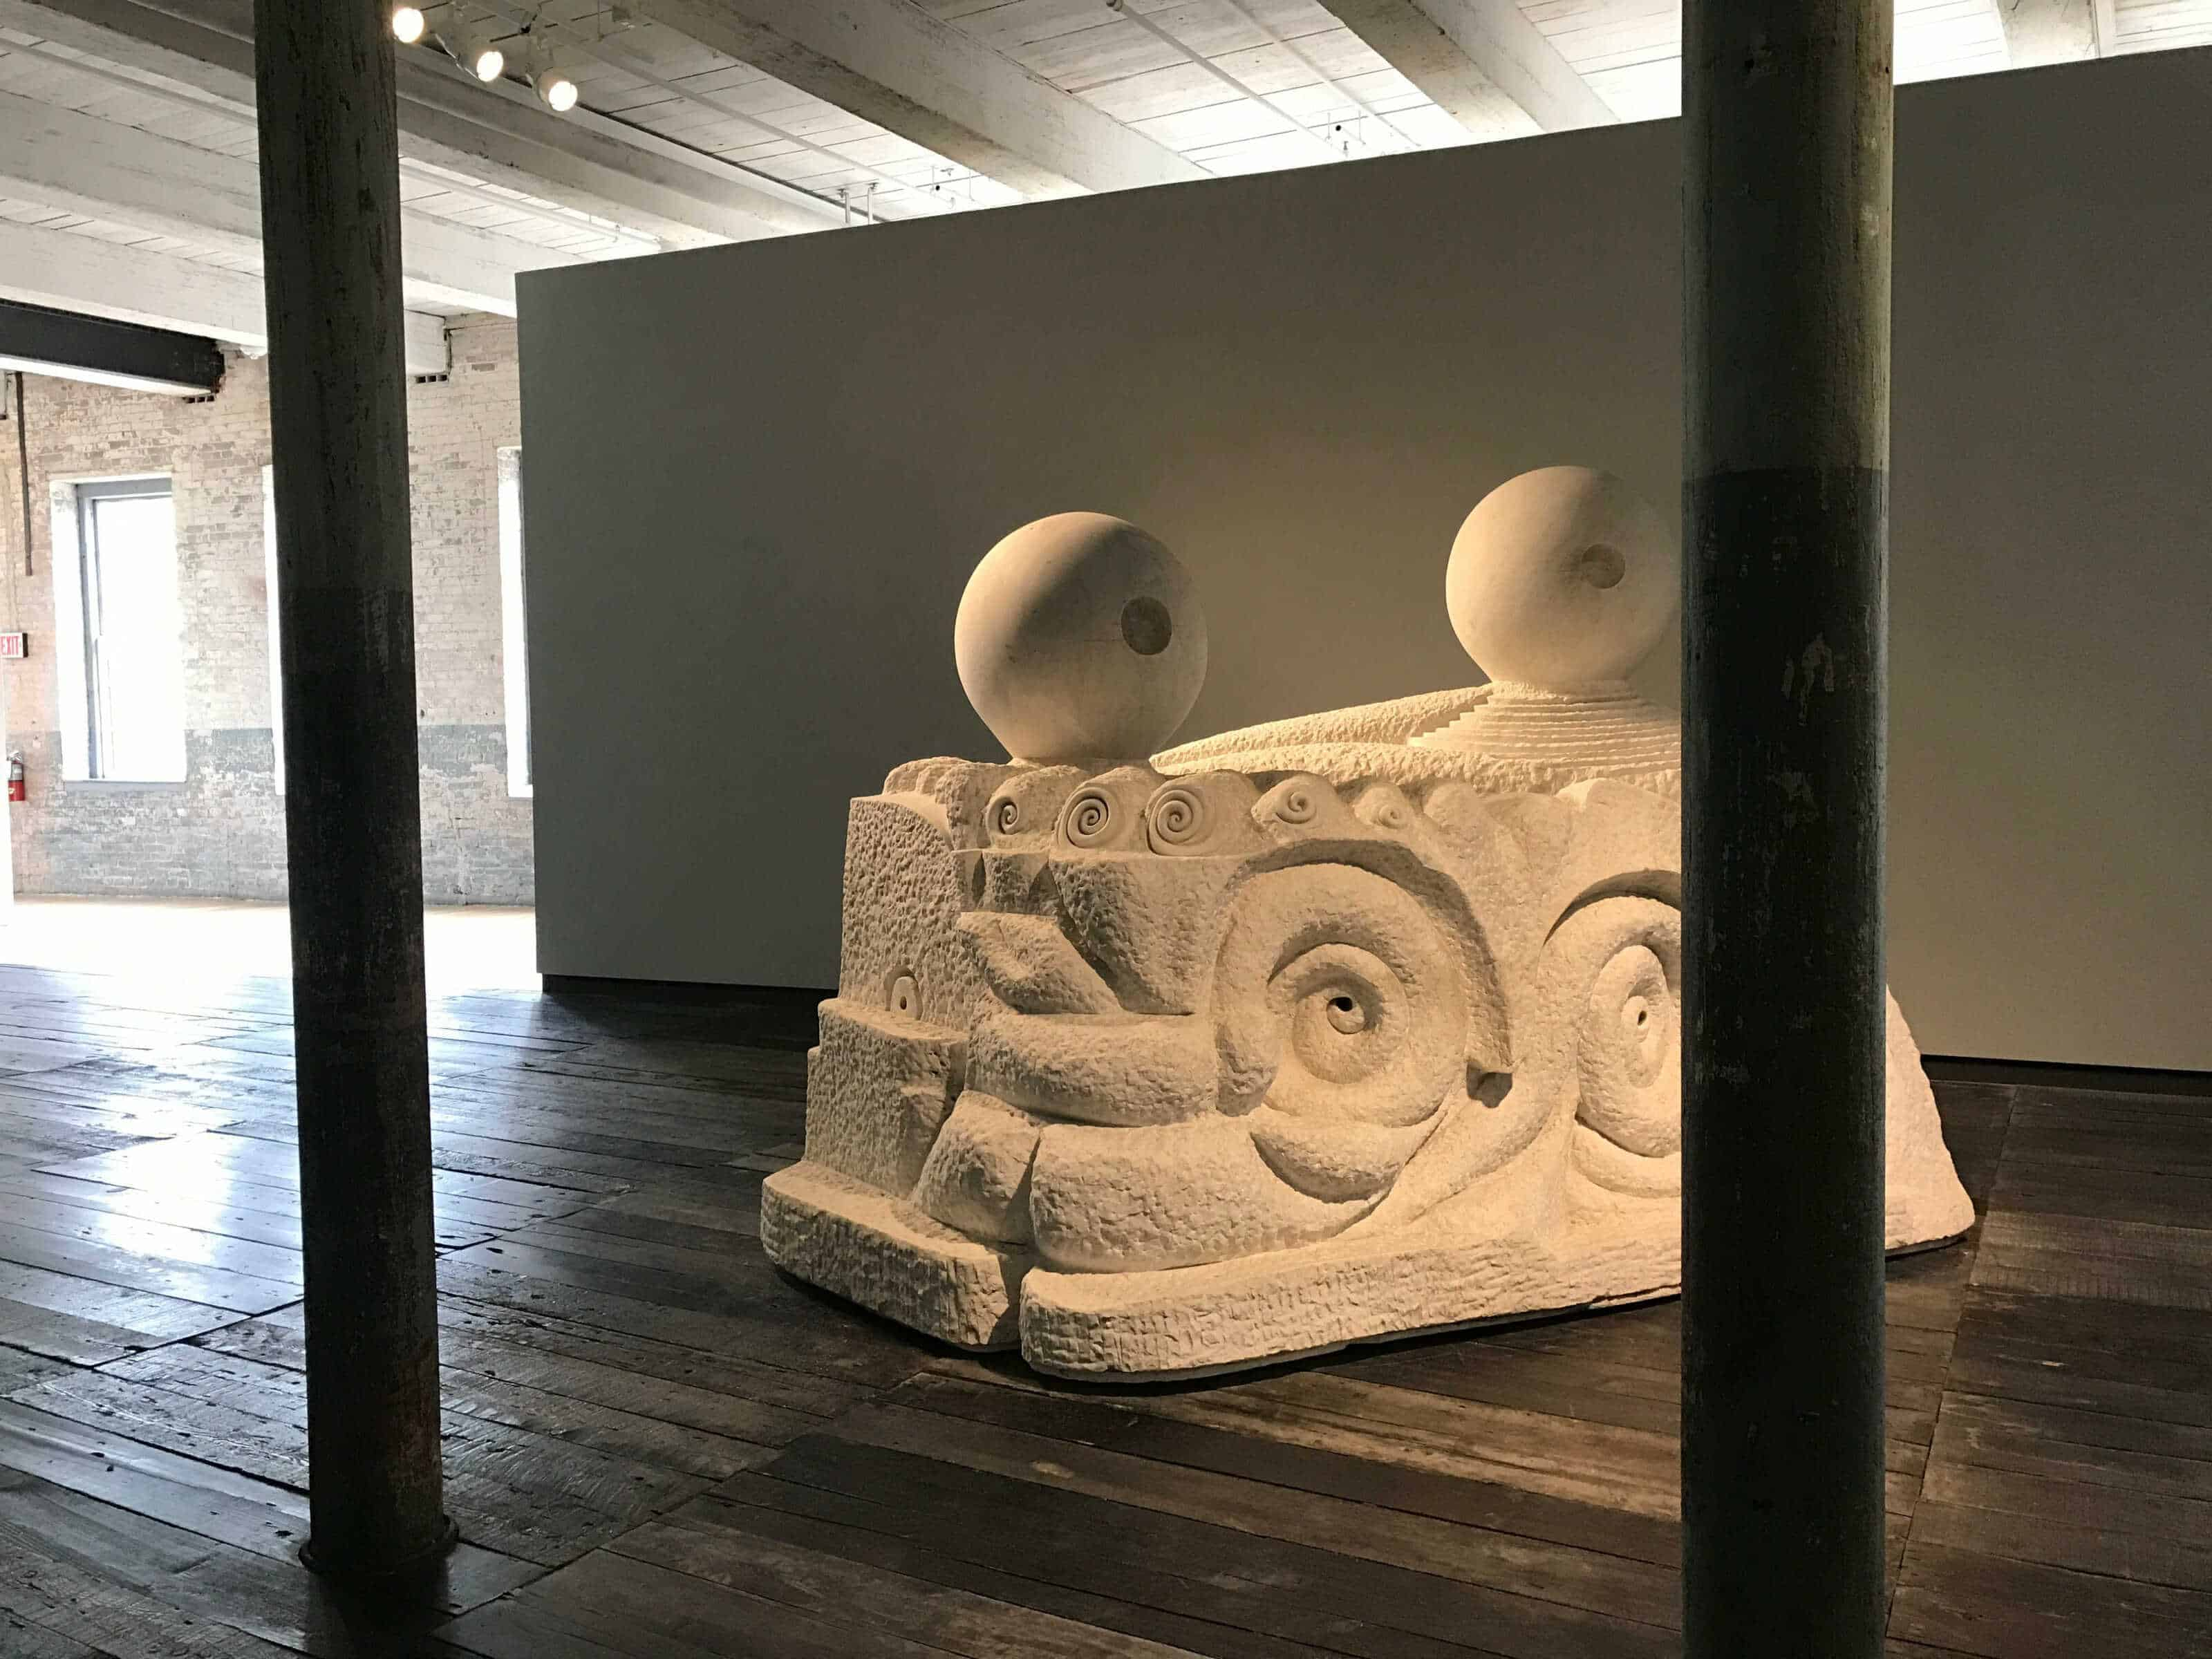 Louise Bourgeois' monumental sculpture fills an open gallery space in MoCA's new Building 6. Photo by Kate Abbott